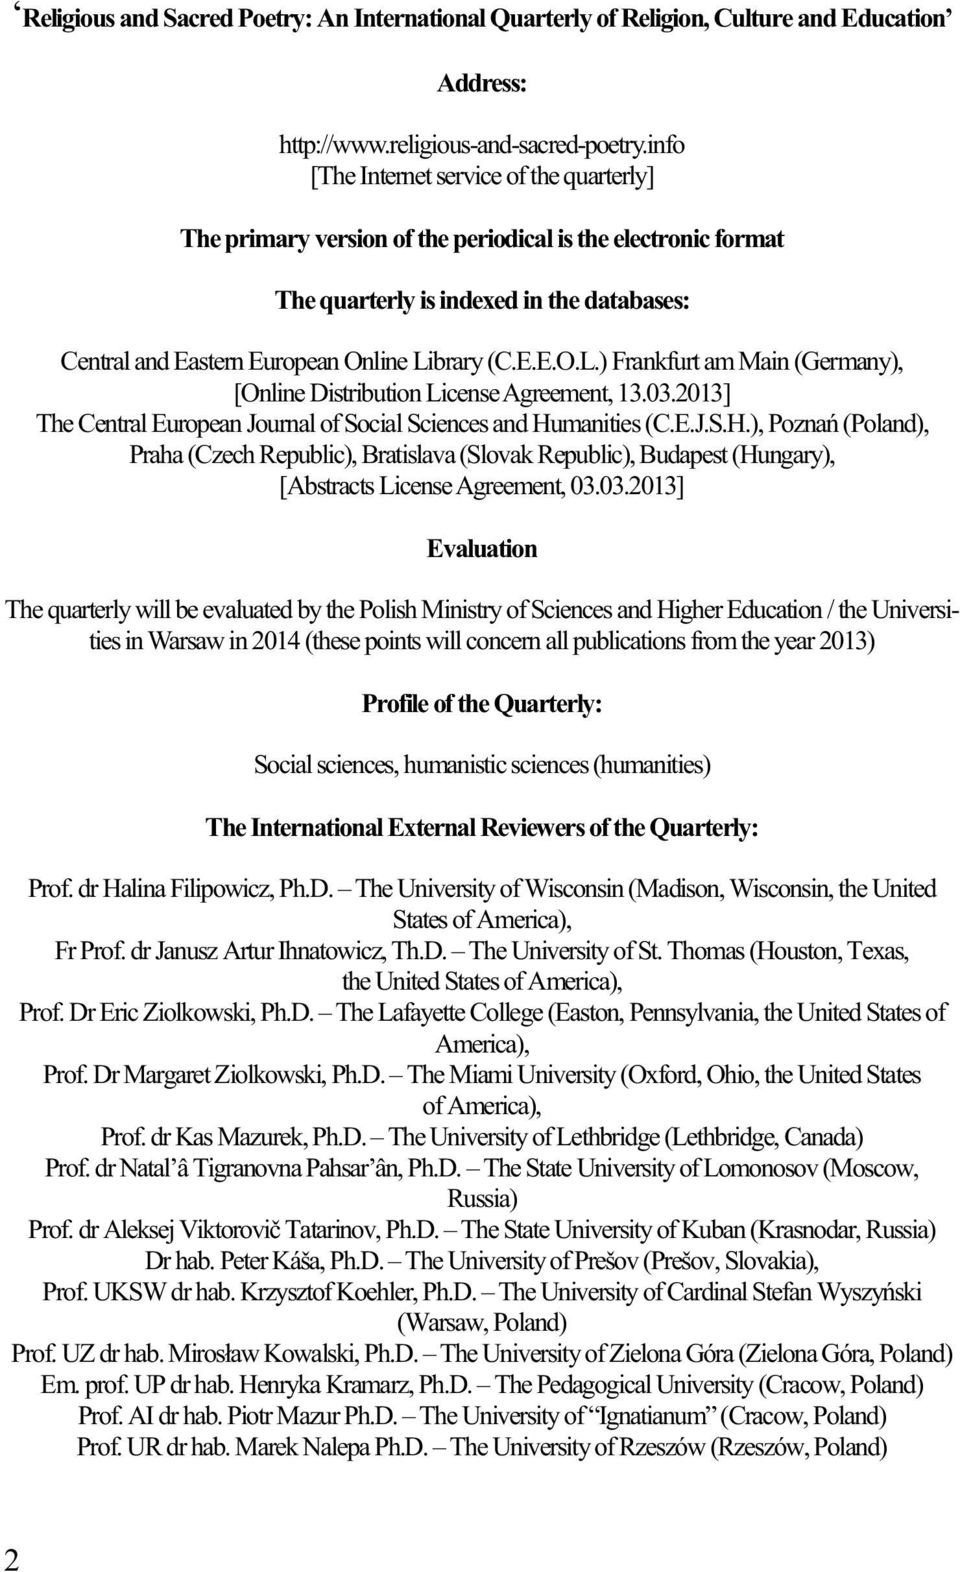 brary (C.E.E.O.L.) Frankfurt am Main (Germany), [Online Distribution License Agreement, 13.03.2013] The Central European Journal of Social Sciences and Hu